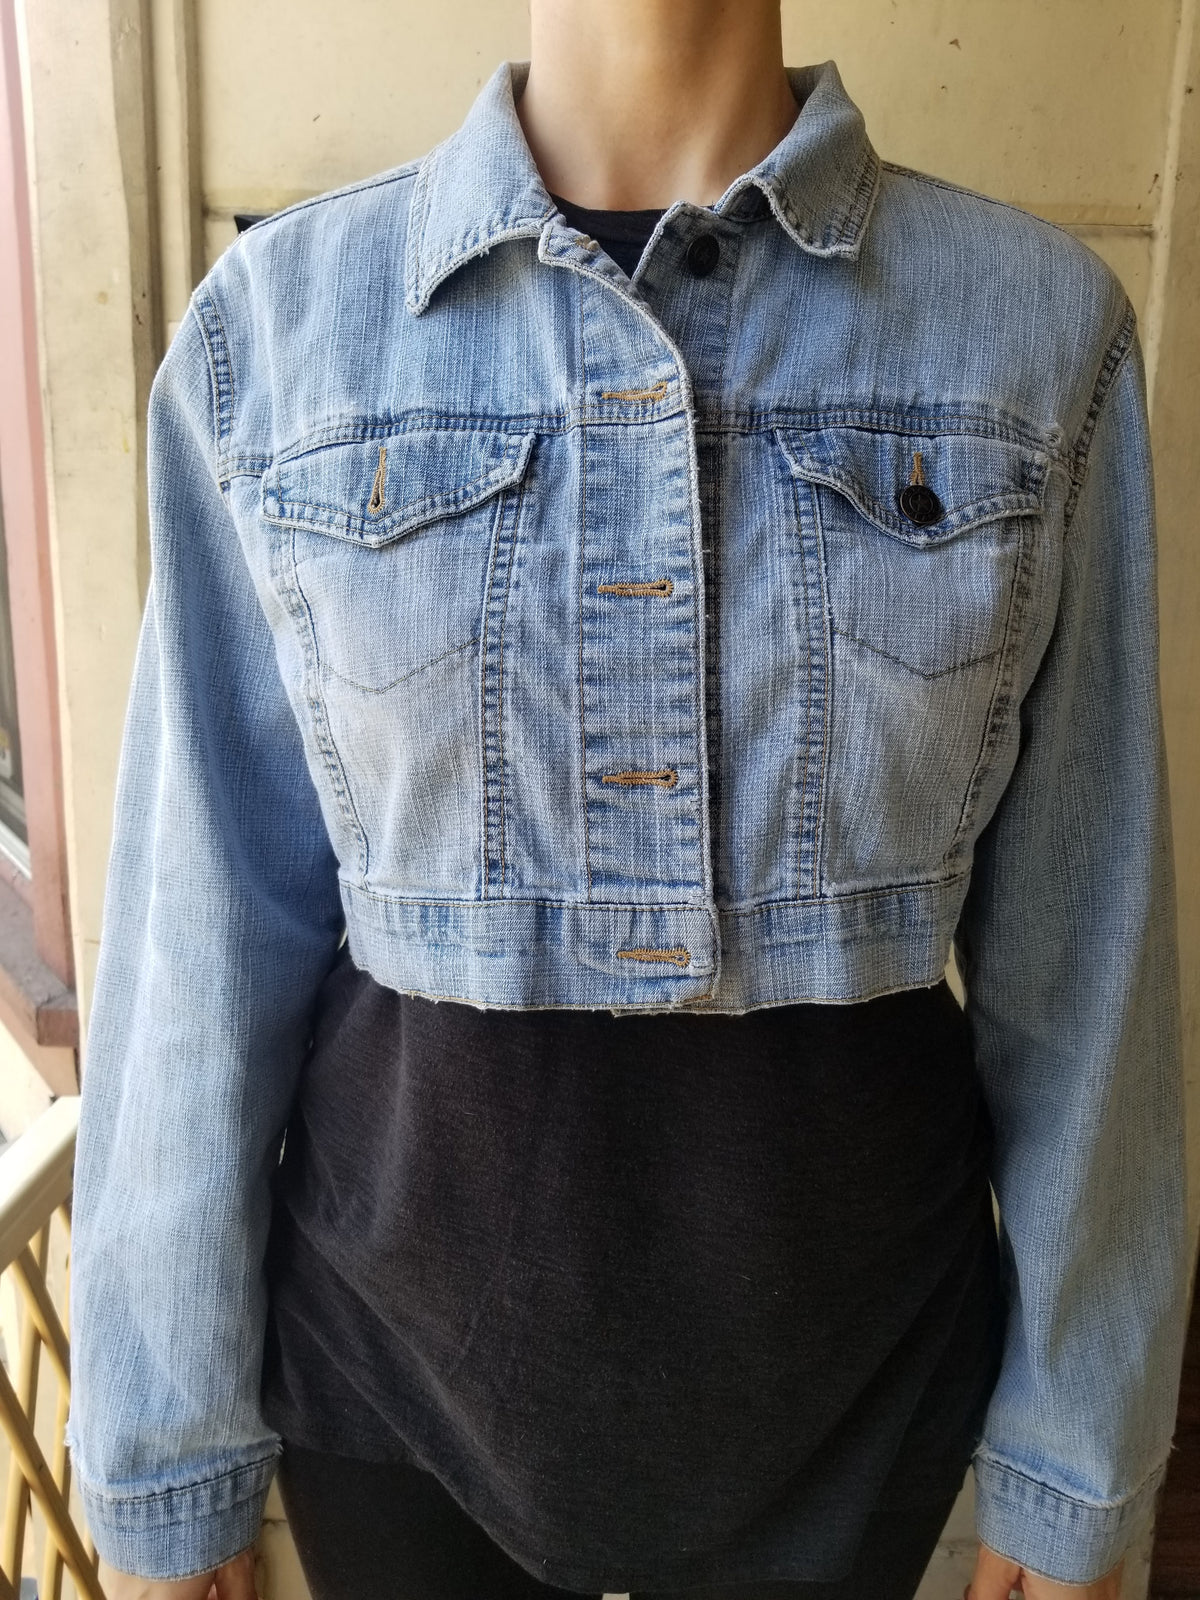 SOLD - One of a Kind Upcycled Jean Jacket Vegan Rebel by Le Fou